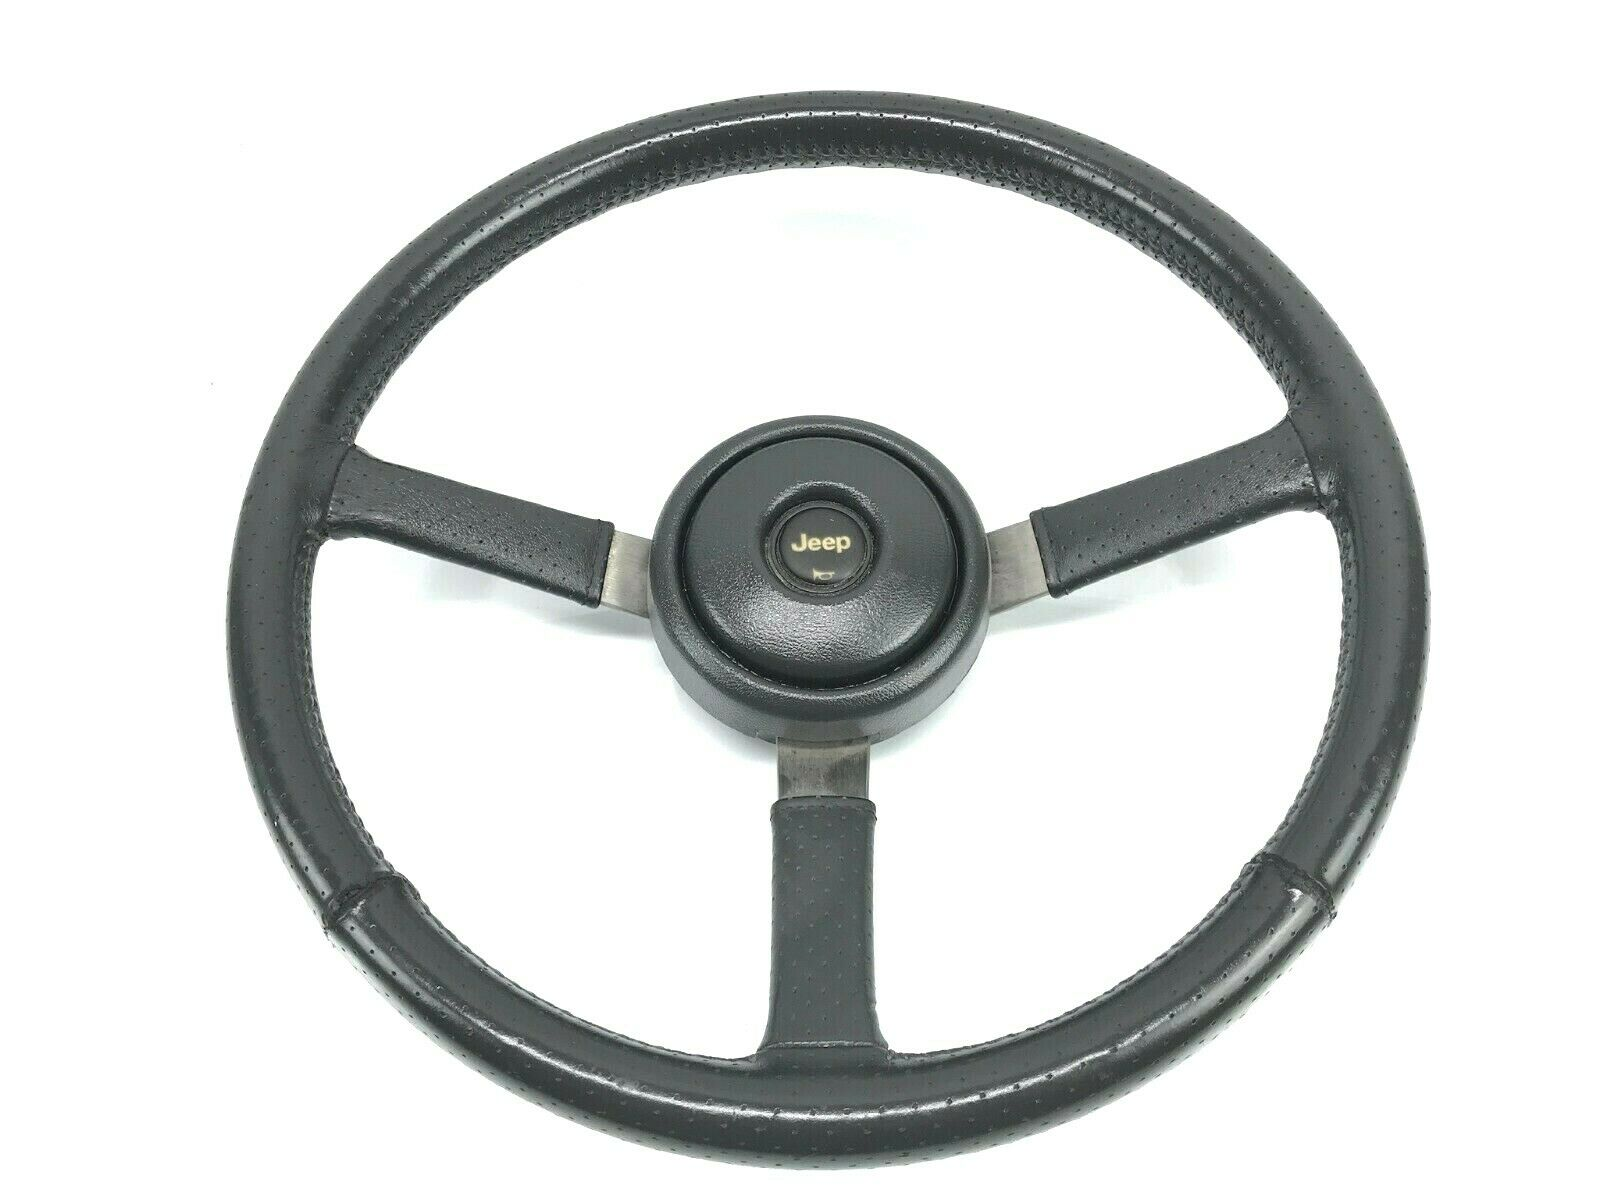 1988-1995 Jeep Wrangler YJ Logo Steering <em>Wheel</em> Horn Button <em>Cap</em> OEM